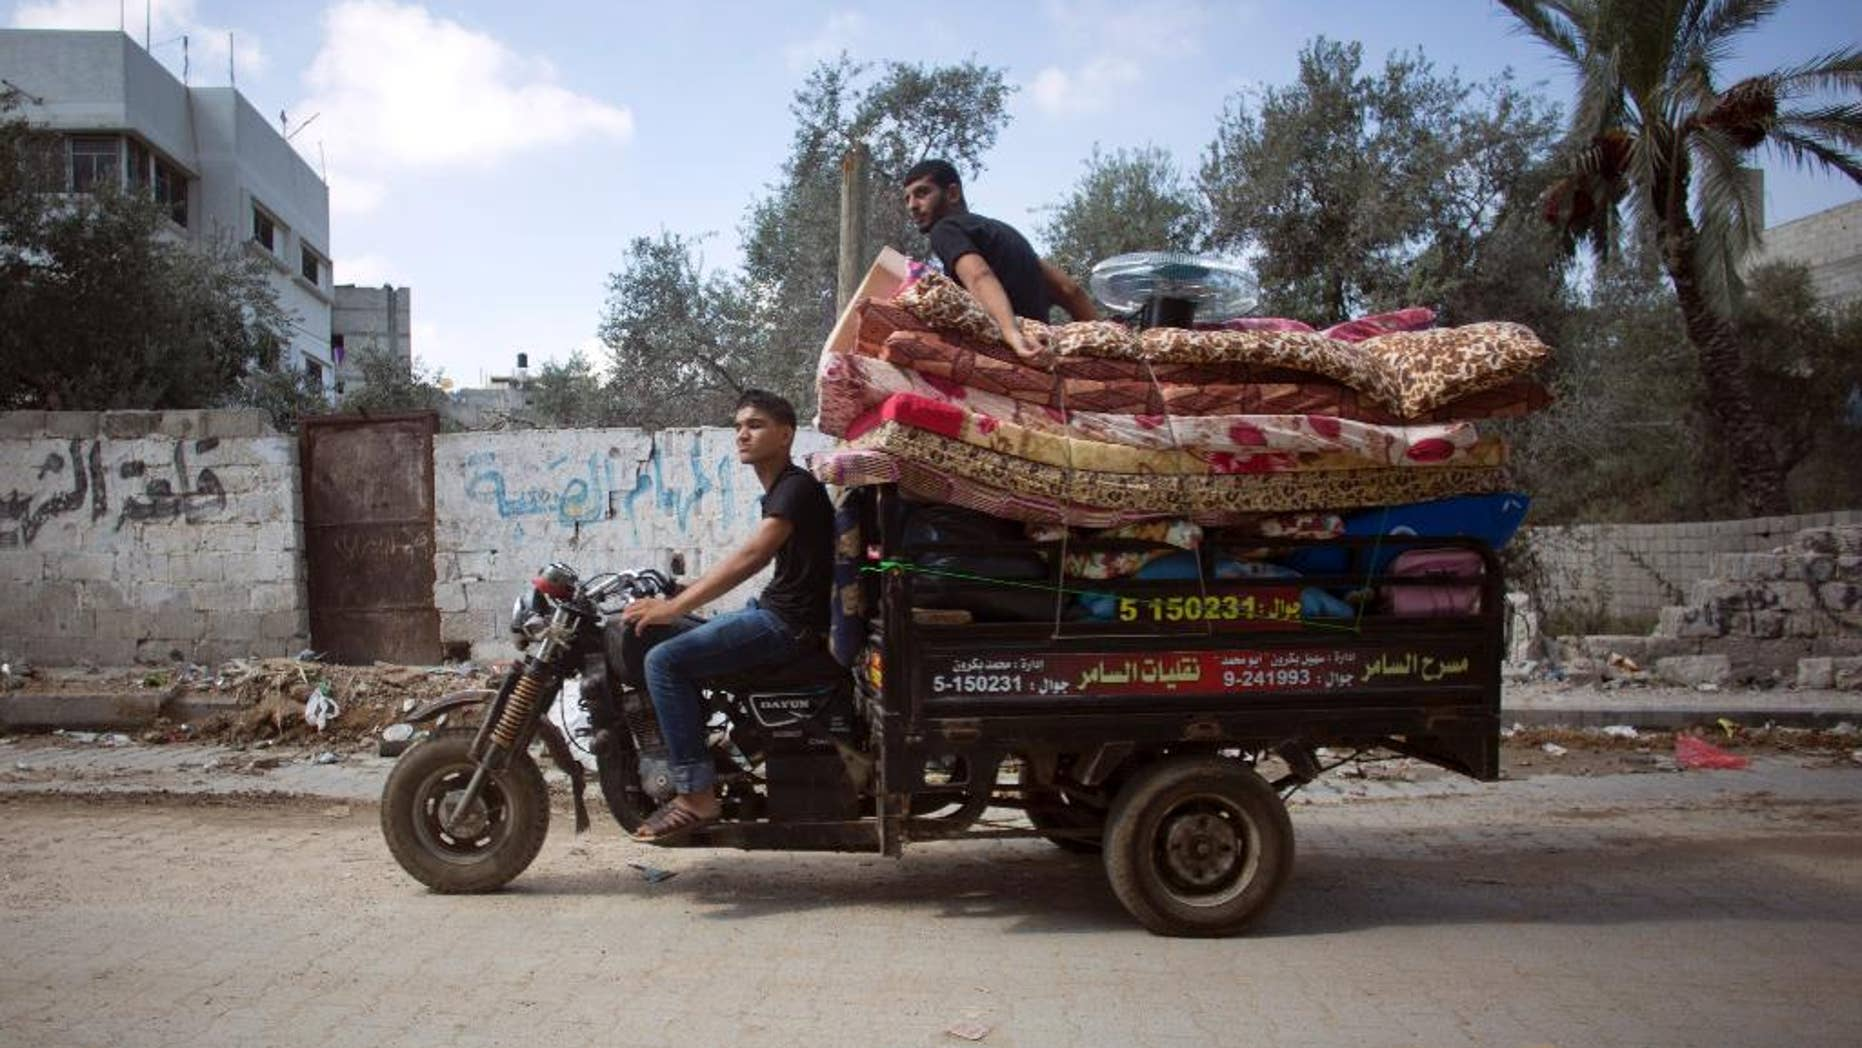 Palestinians with their belongings drive a motorbike back to their house in Gaza City's Shijaiyah neighborhood, Wednesday, Aug. 27, 2014. (AP Photo/Khalil Hamra)